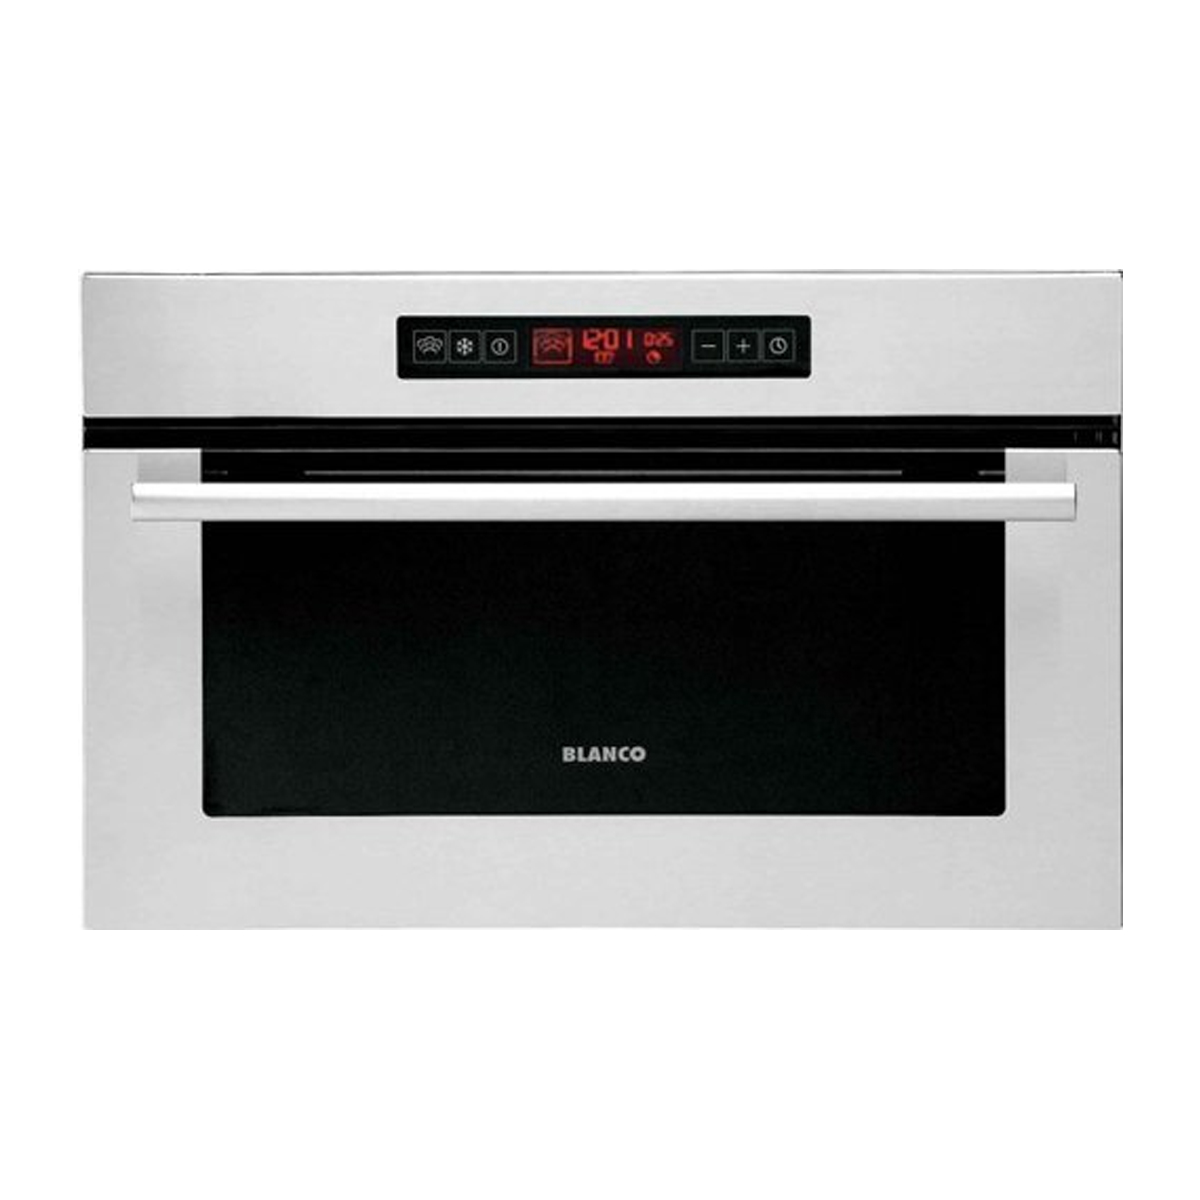 Blanco BOSS383X 23L Steam Oven